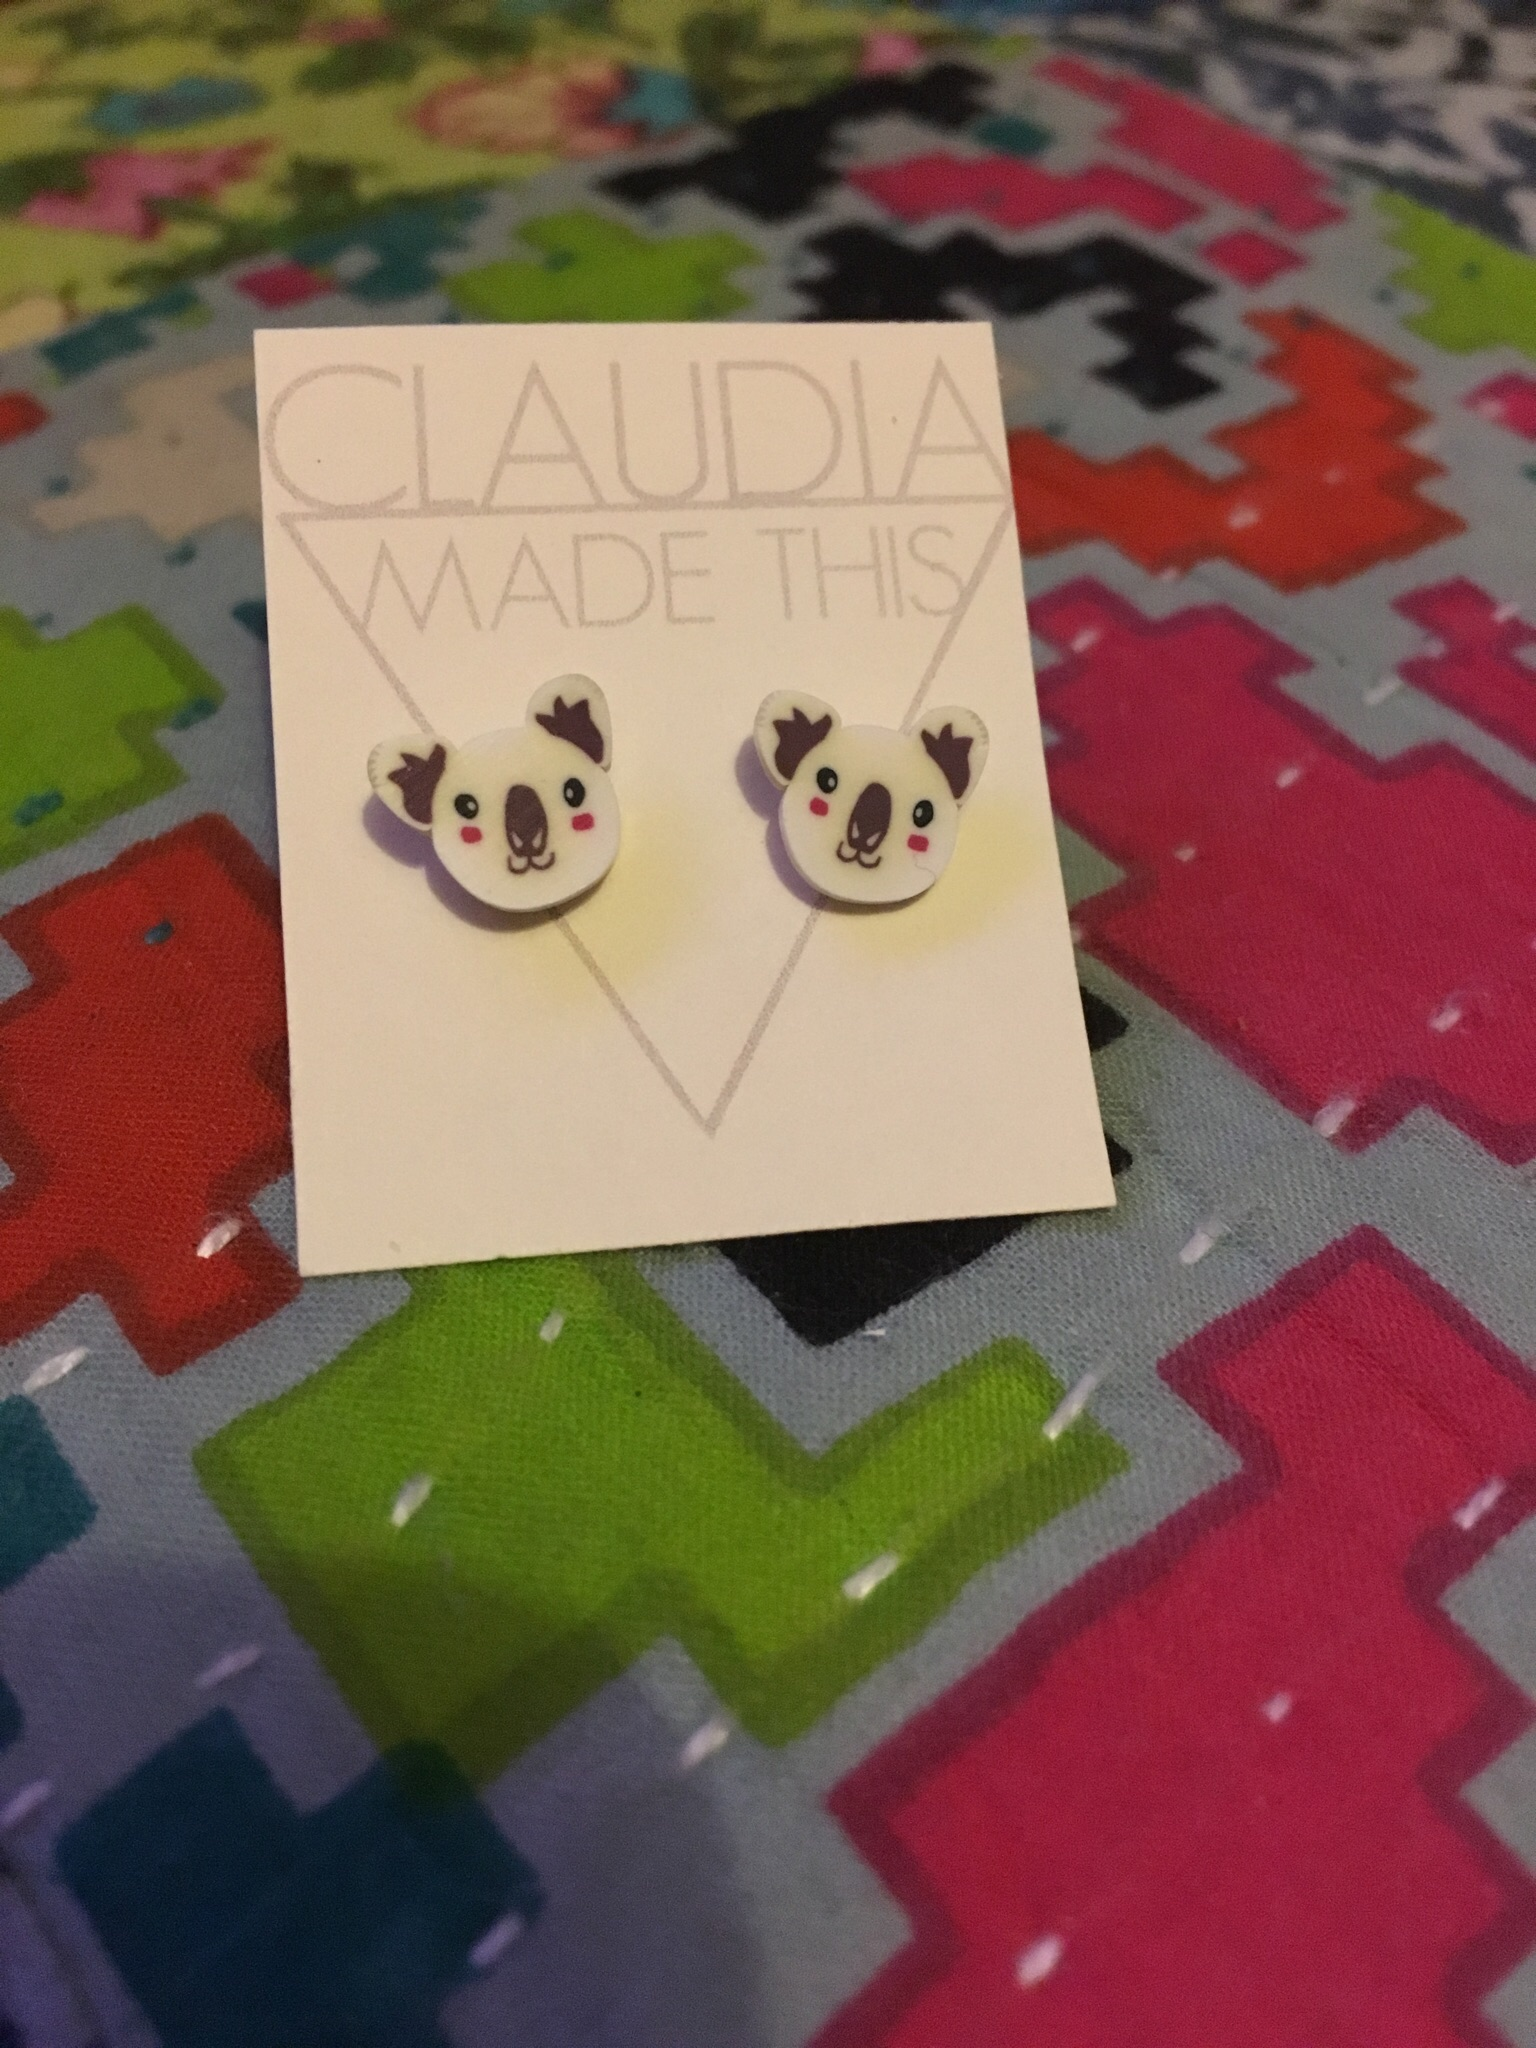 Day 13 & Koola earrings from Claudia Made This